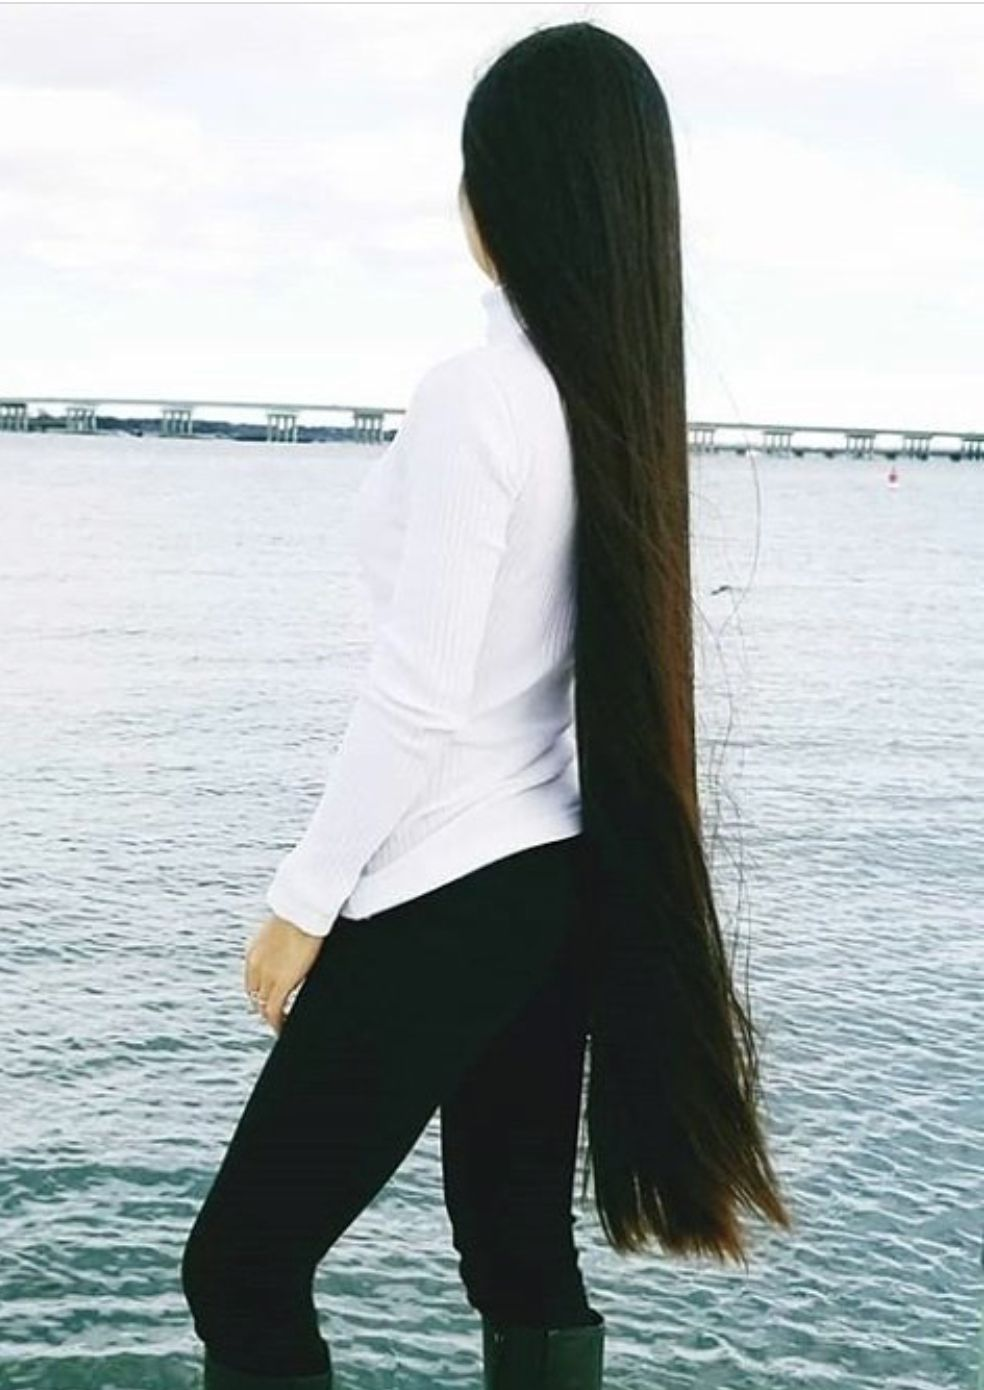 Pin by Michele Dinoi on Capelli Lunghi  Pinterest  Long long hair